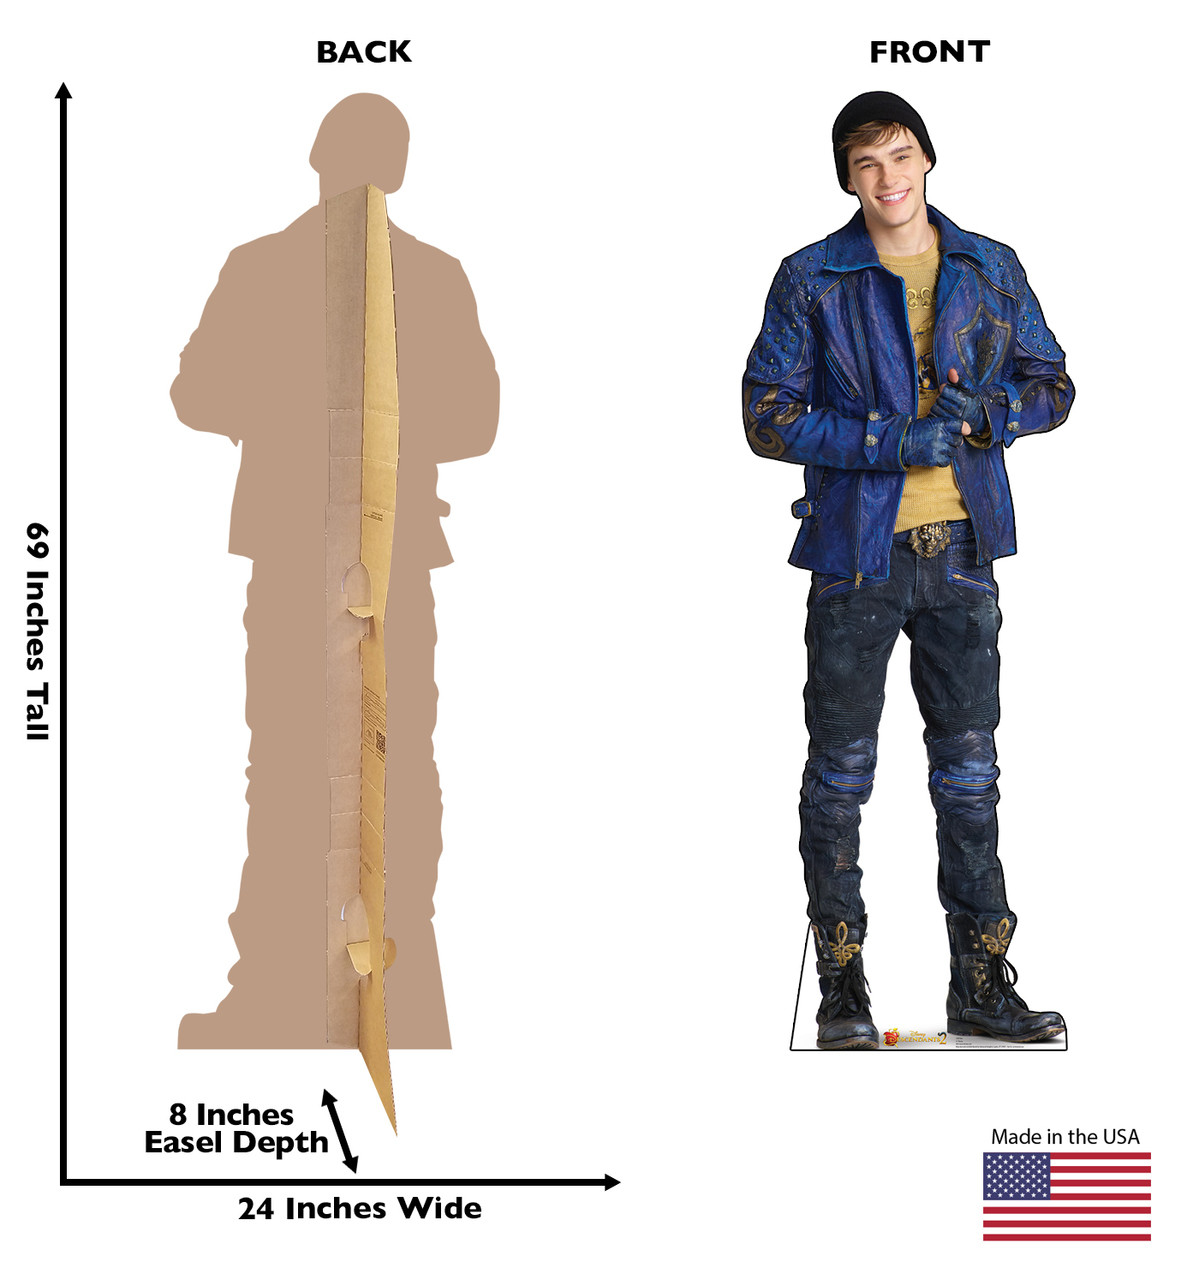 Life-size Ben (Descendants 2) Cardboard Standup with back and front dimensions